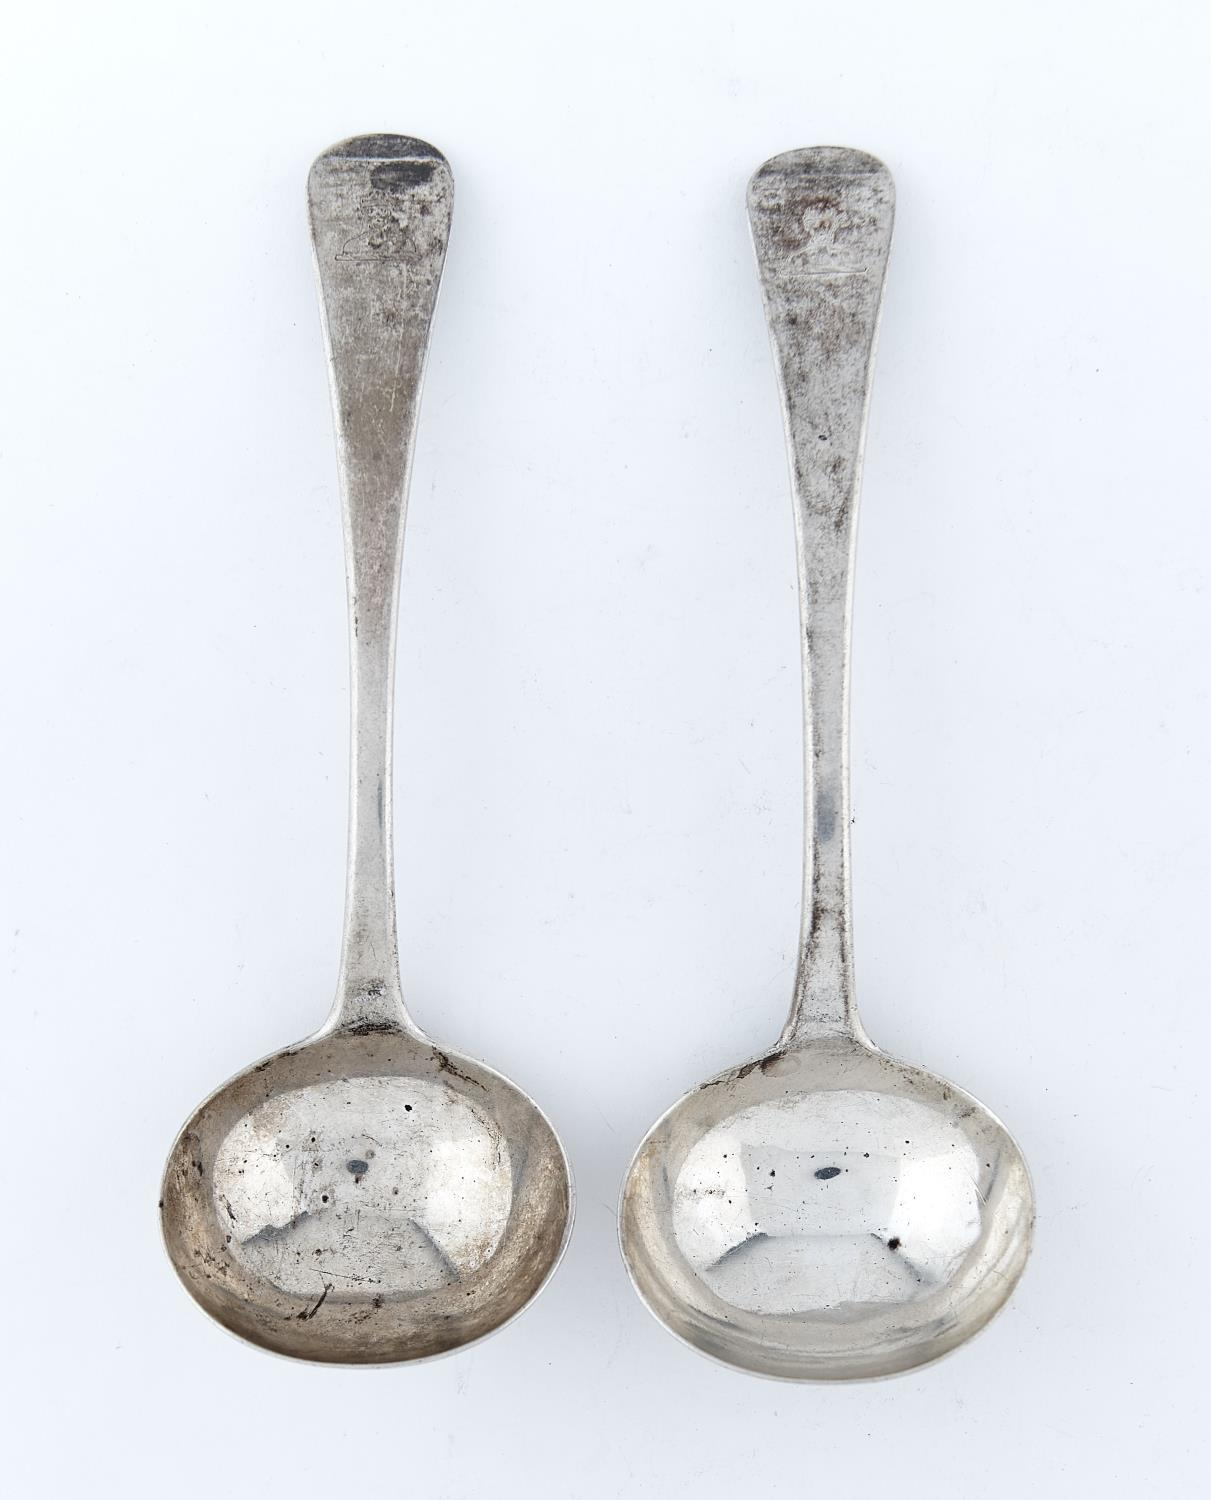 A PAIR OF GEORGE III SILVER SAUCE LADLES, OLD ENGLISH PATTERN, CRESTED (A MOOR'S HEAD), BY ELEY &